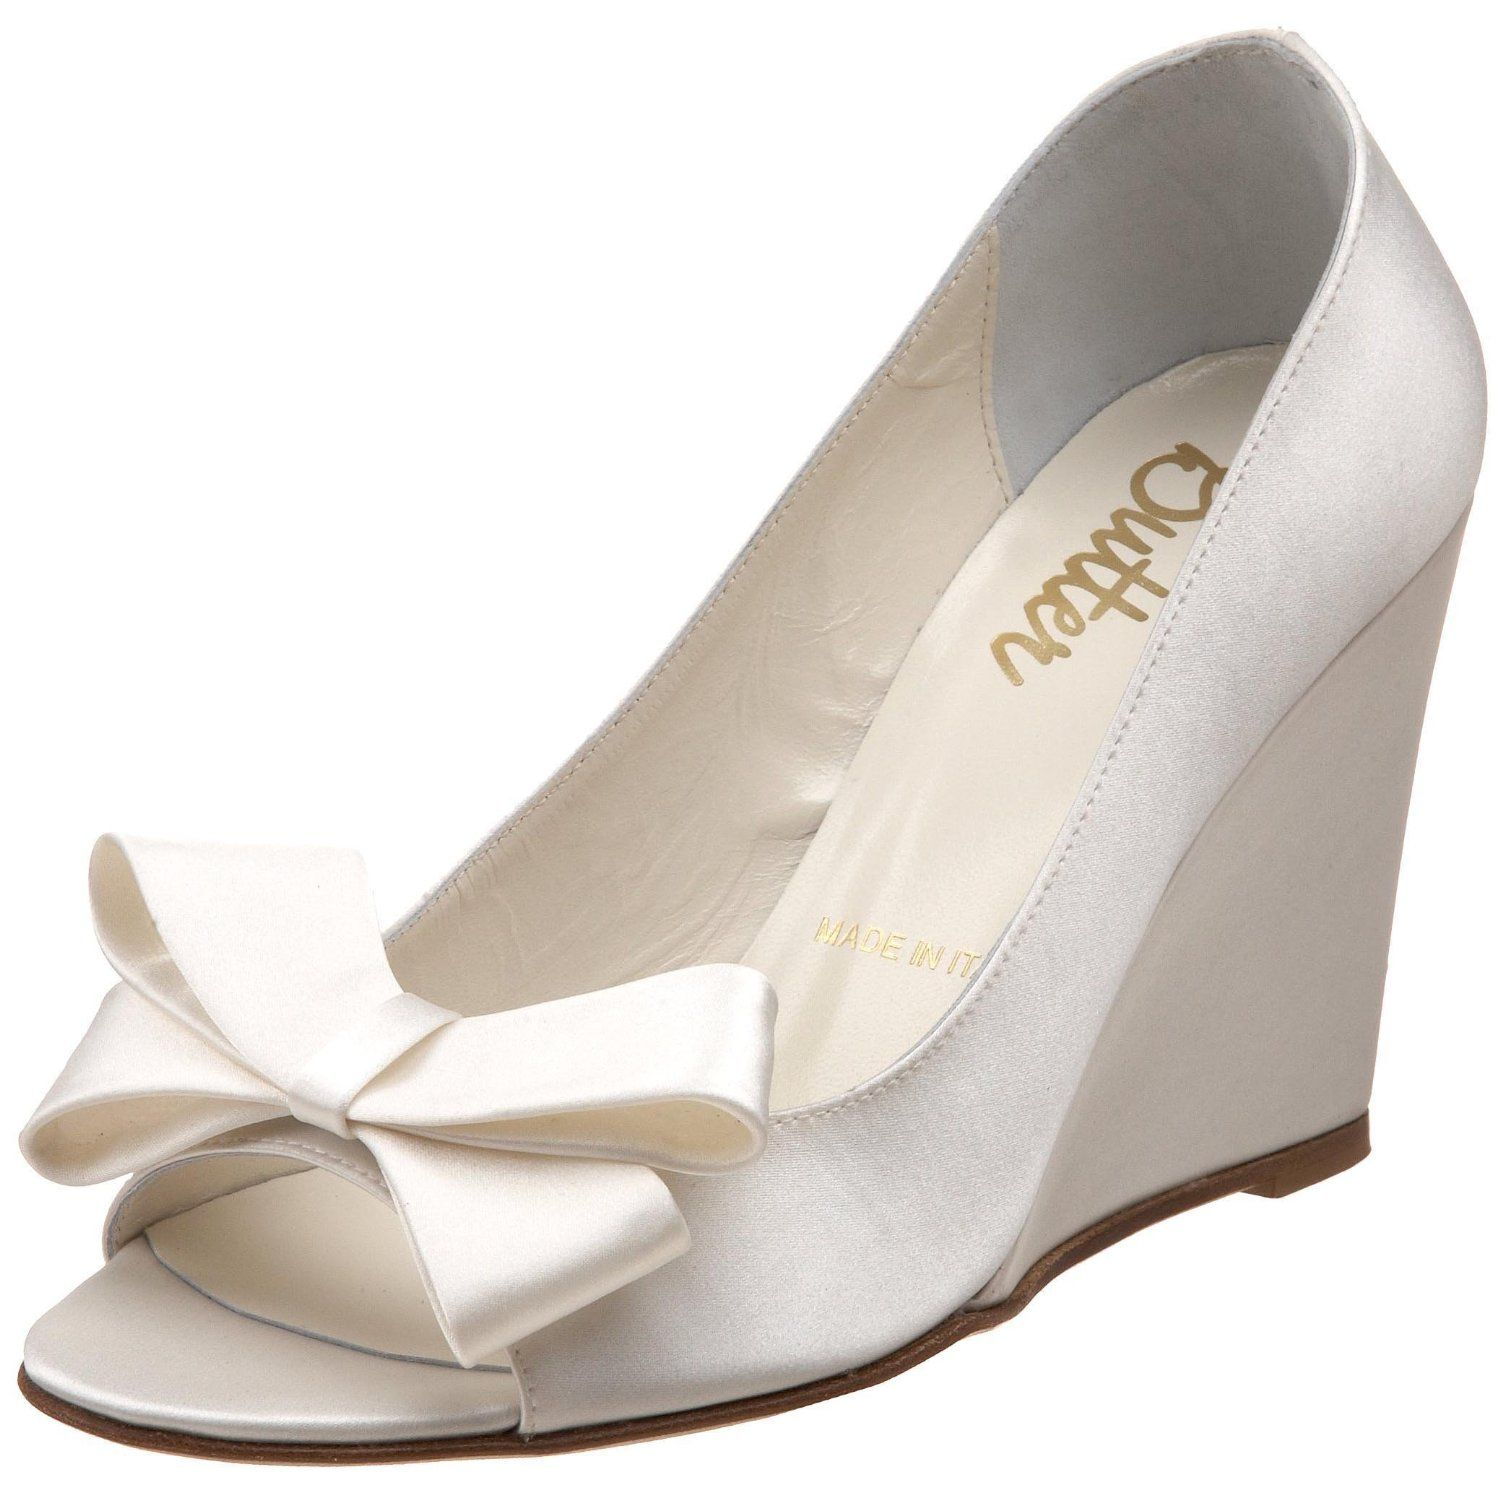 5eda8a89512 http%3A%2F%2Fheresplanb.hubpages.com%2Fhub%2FWhite-Wedge-Wedding-Shoes -Buyers-Guide